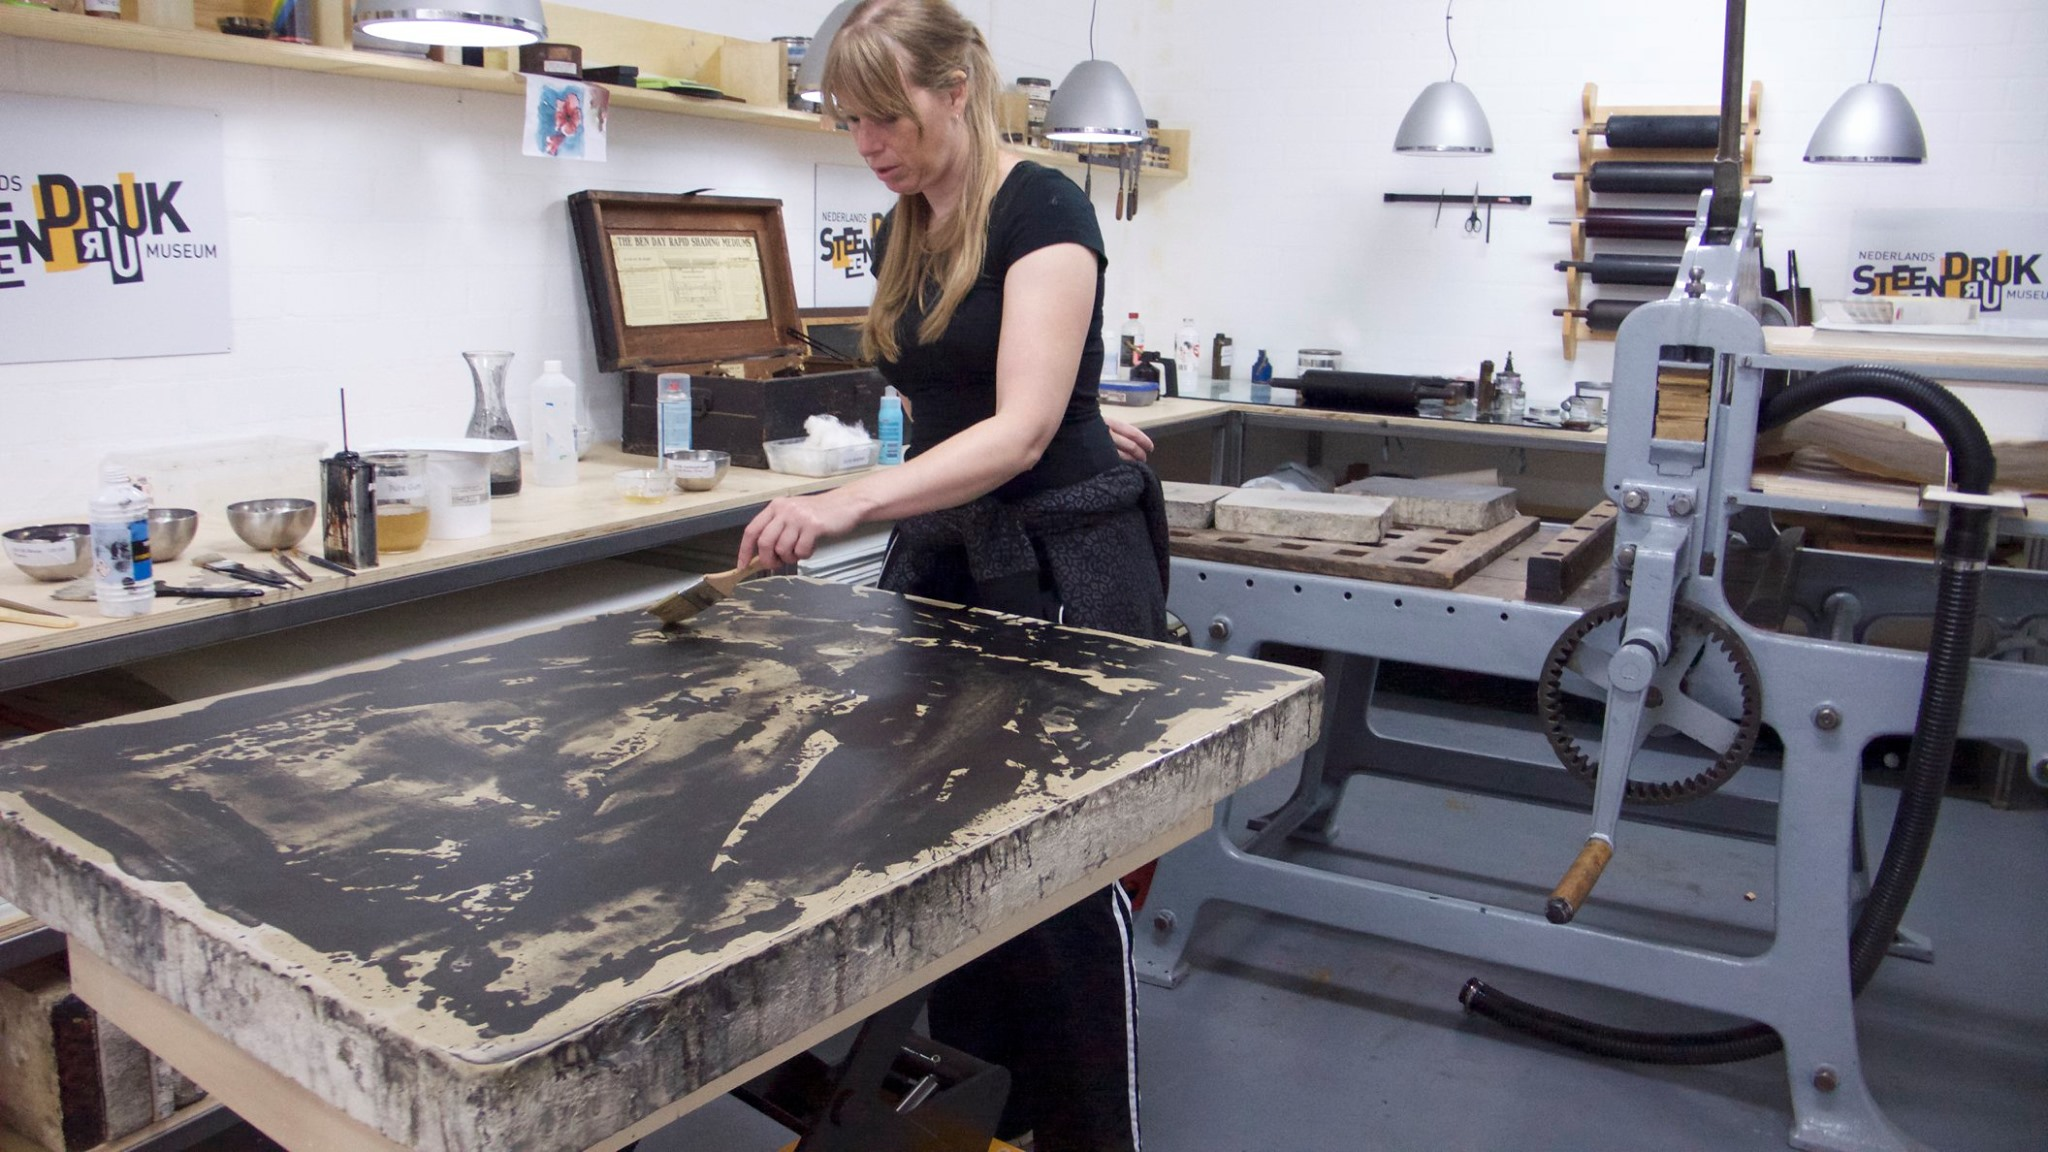 In the summer of 2019 I will be realizing a large scale lithography together with the great masterprinter Gertjan Forrer in the studio of Nederlands Steendrukmuseum, Valkenswaard. Photo by Gertjan Forrer